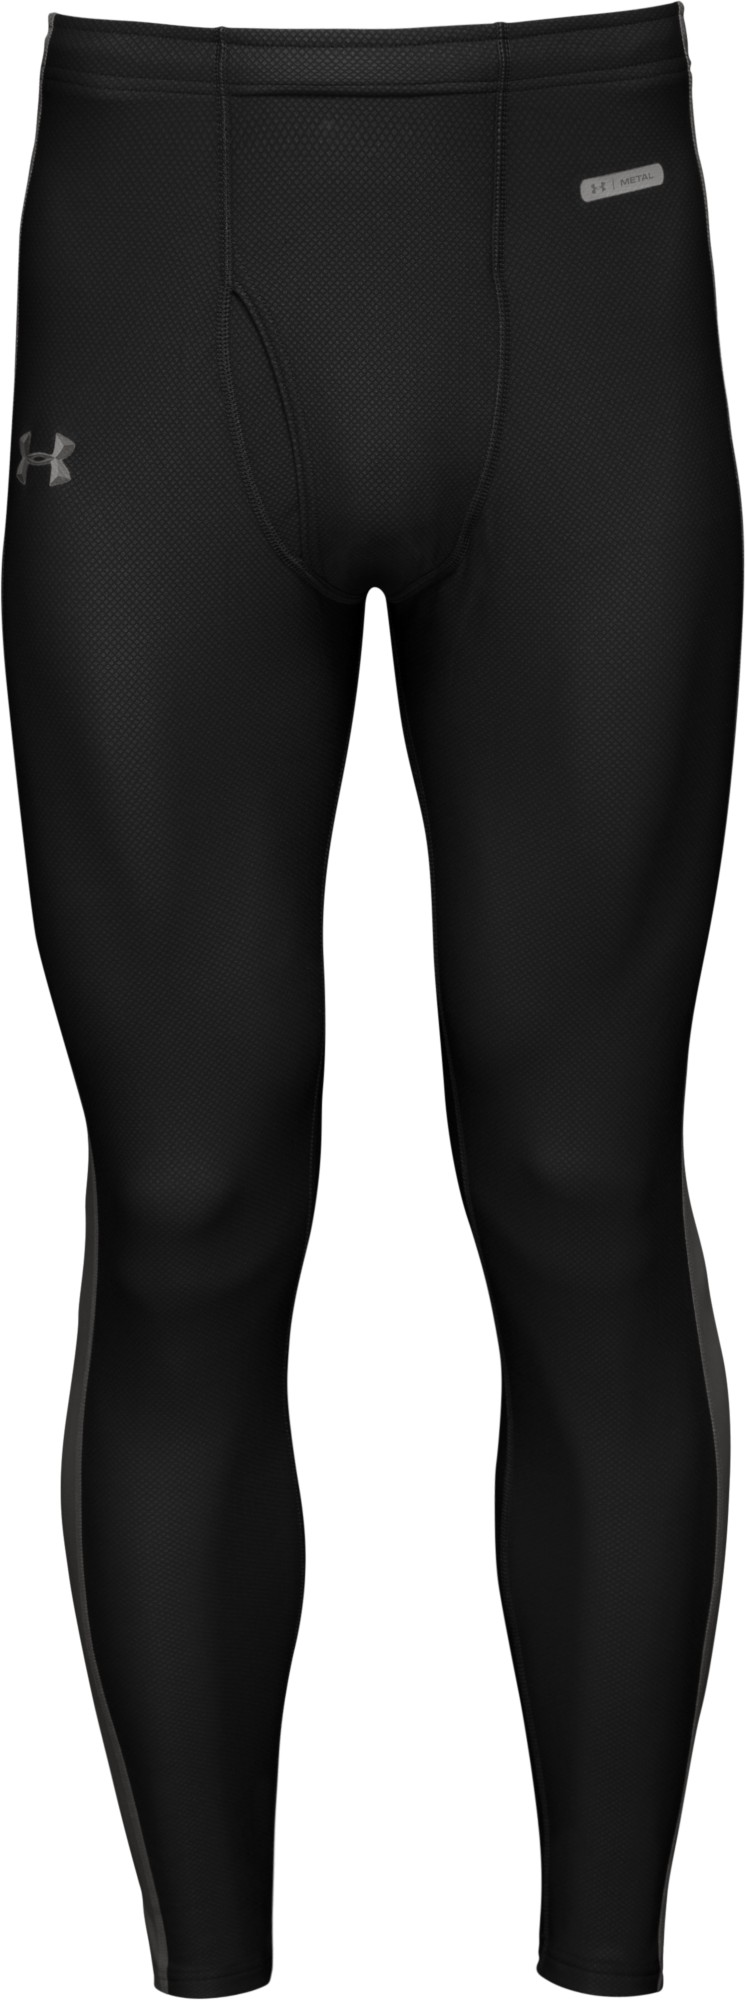 photo: Under Armour ColdGear Metal Legging base layer bottom